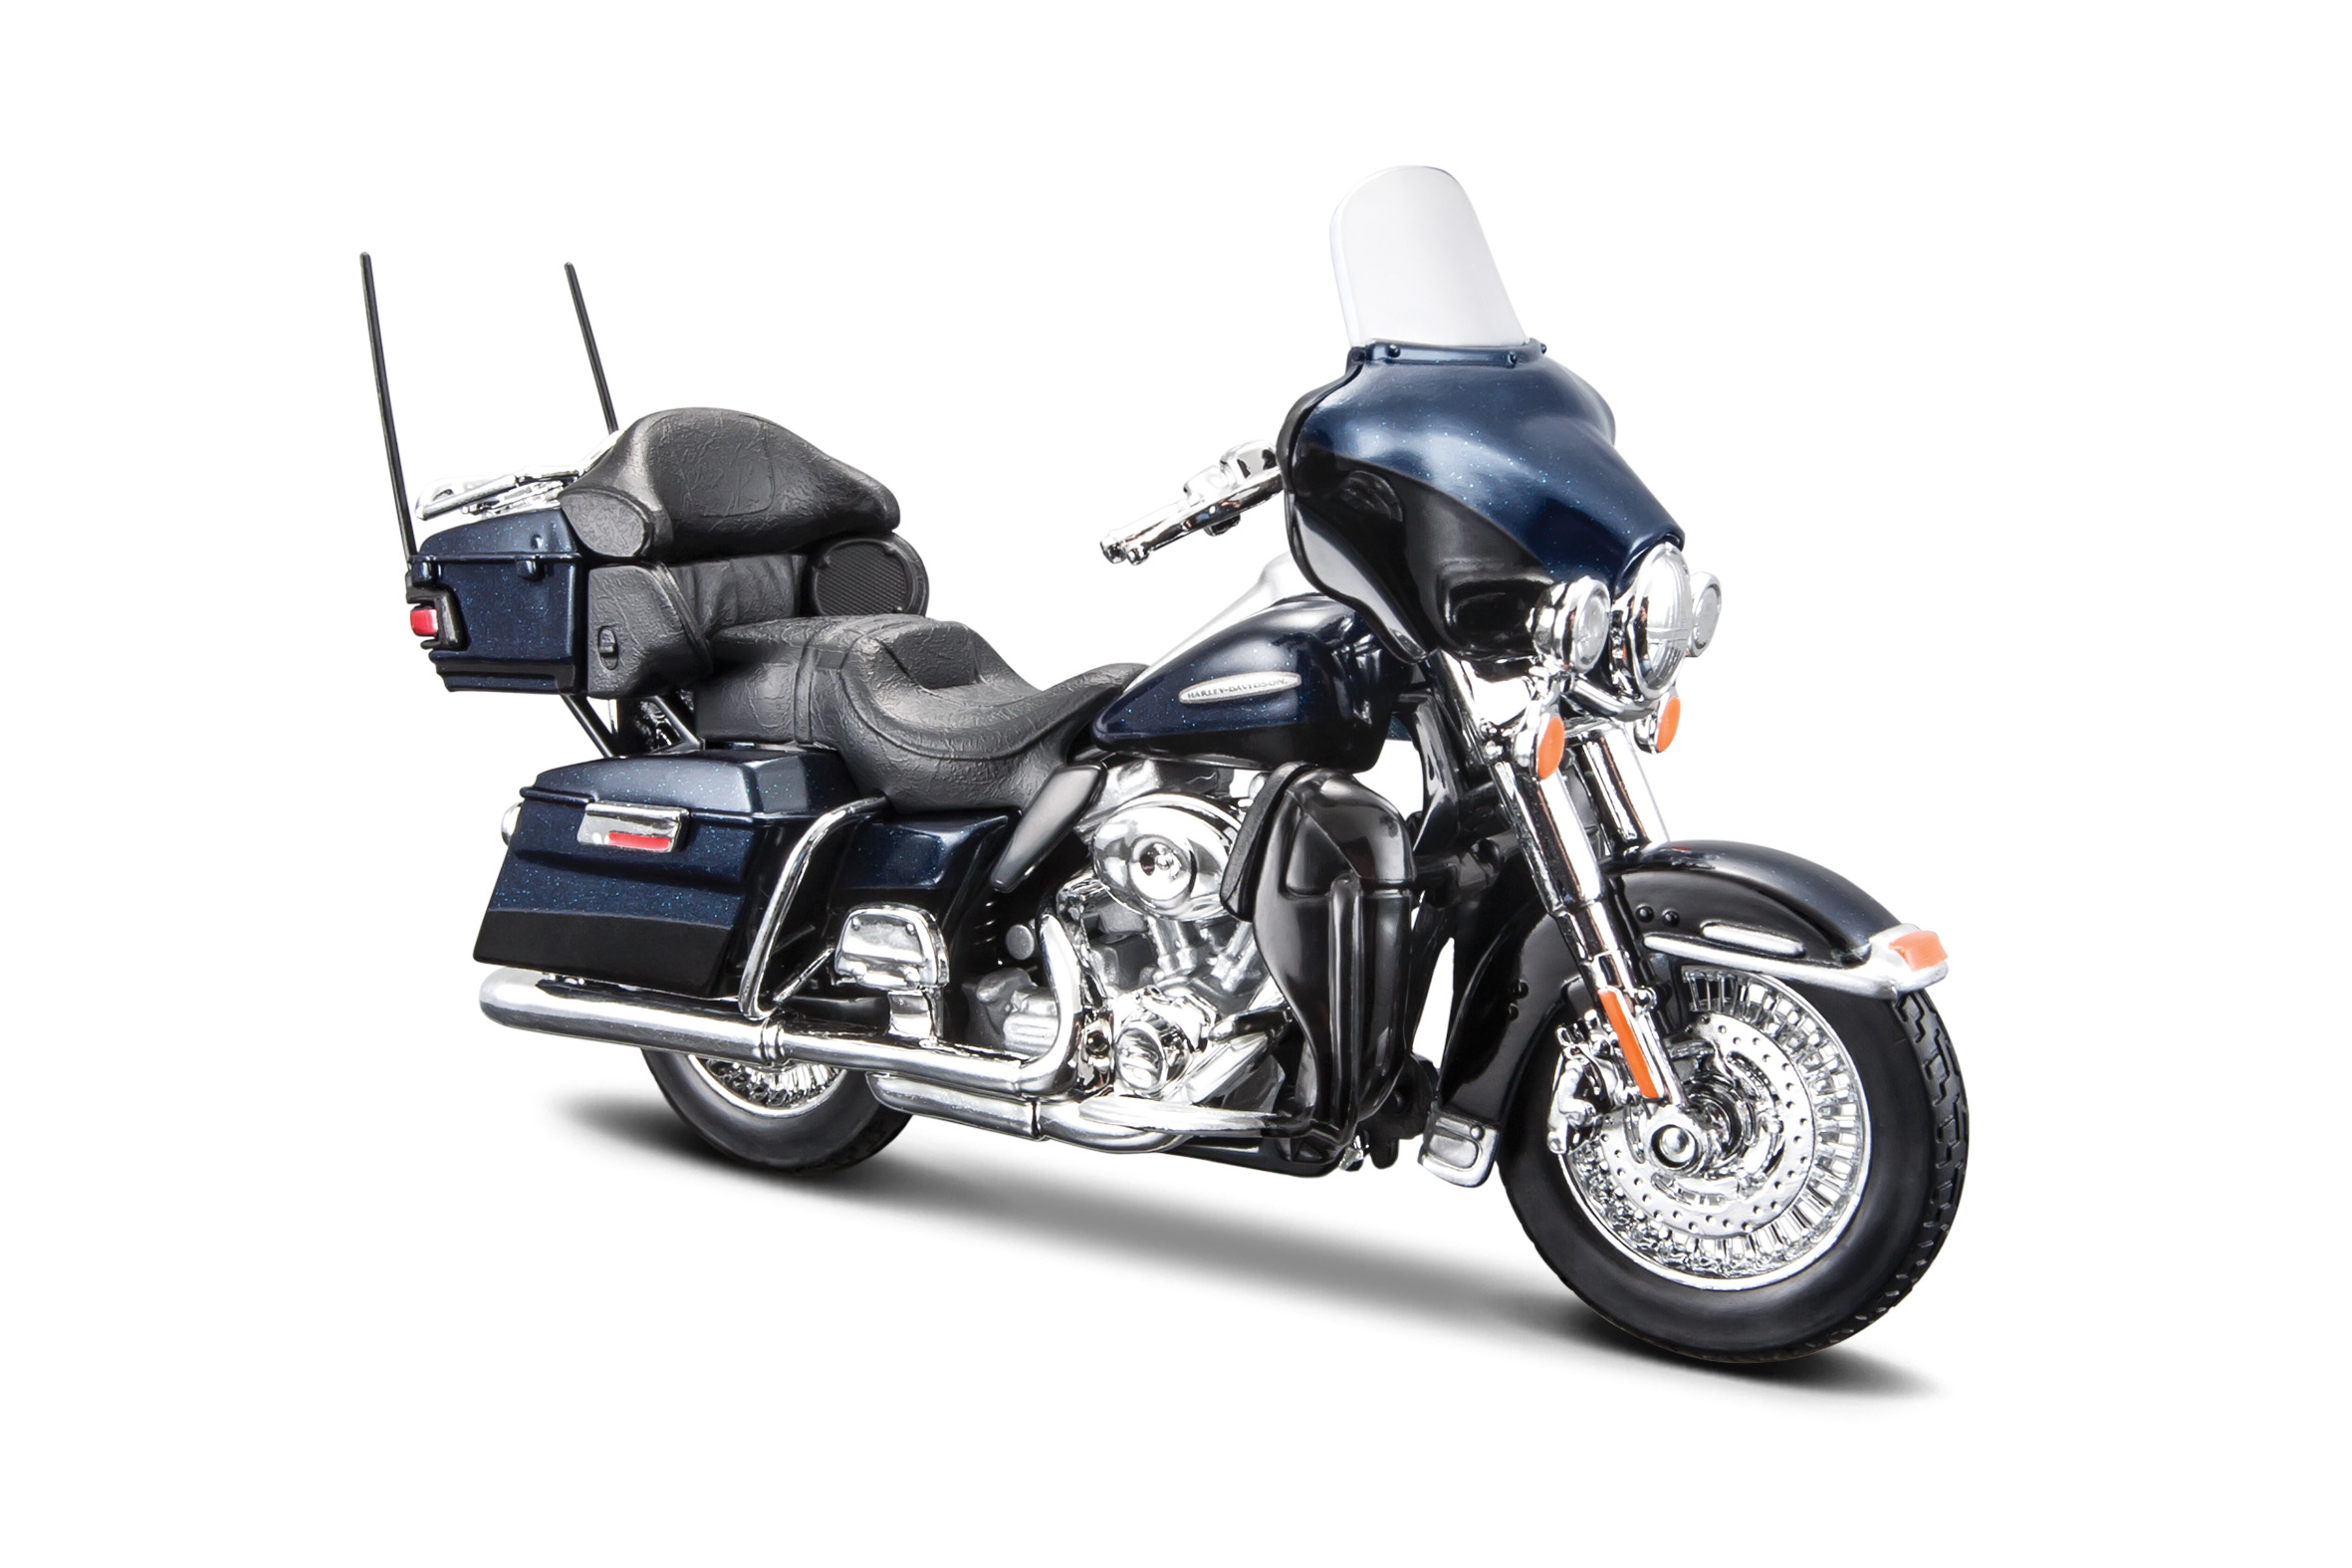 2013 Electra Glide Ultra Limited